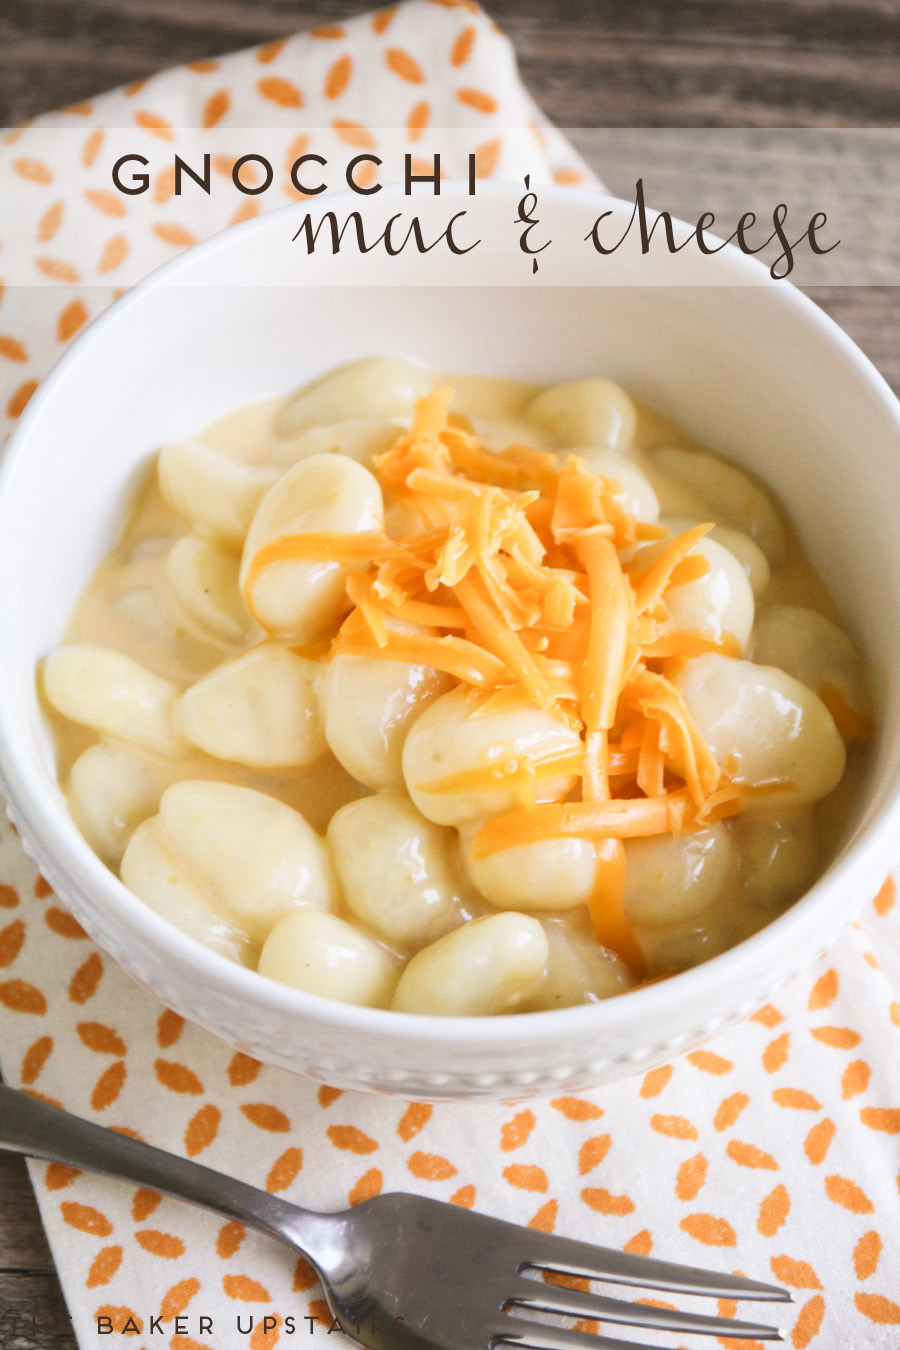 This gnocchi mac and cheese is so quick, cheesy, and delicious!